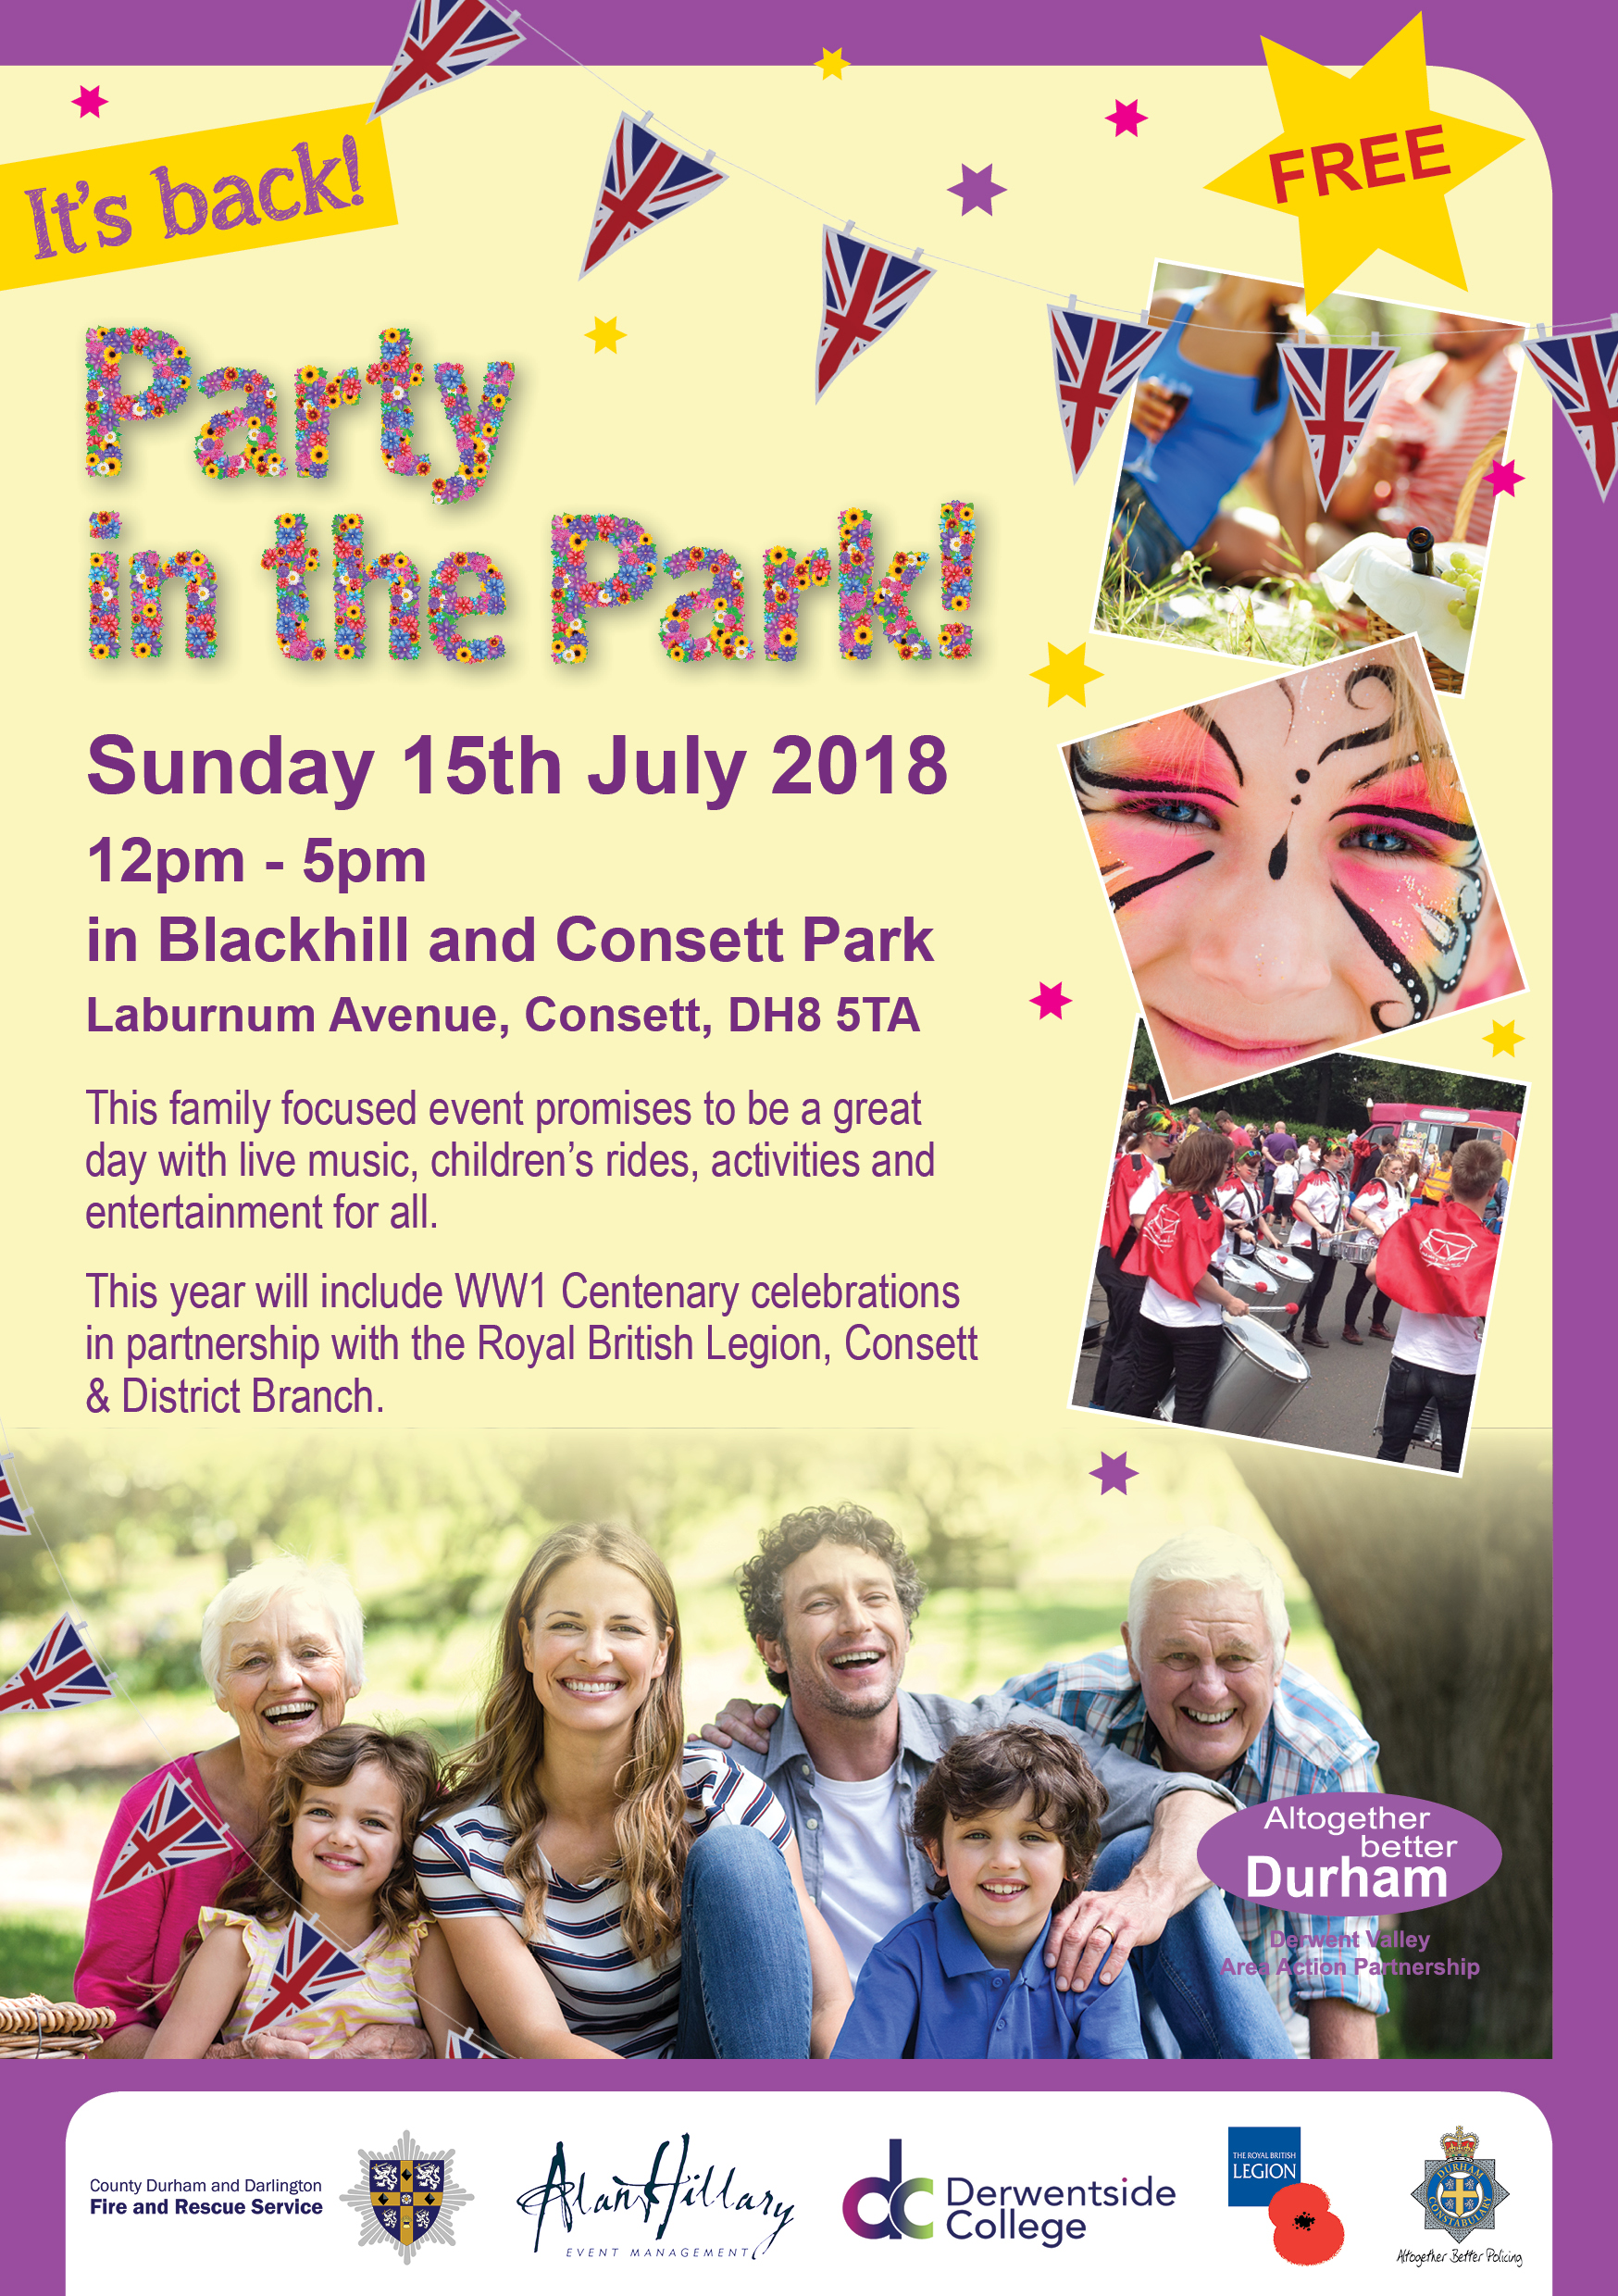 44240 AAP A5 Party in the Park Flyer 2018